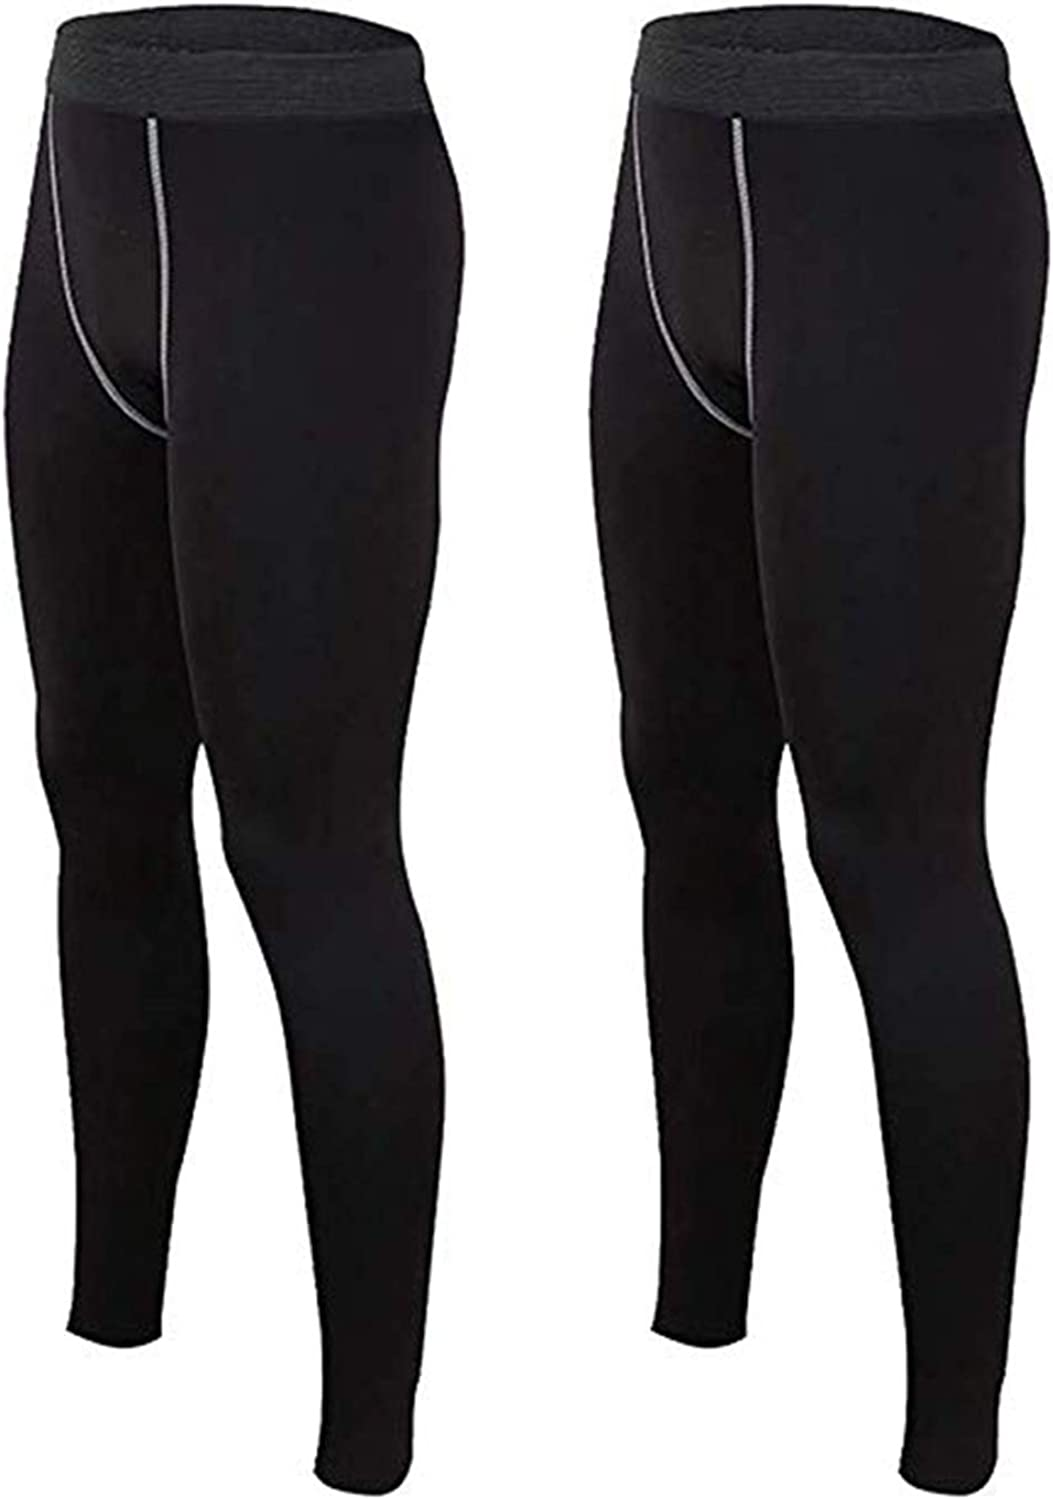 Mens Compression Long Pant Base Layer Sports Workout Leggings Tops Fitness HOT